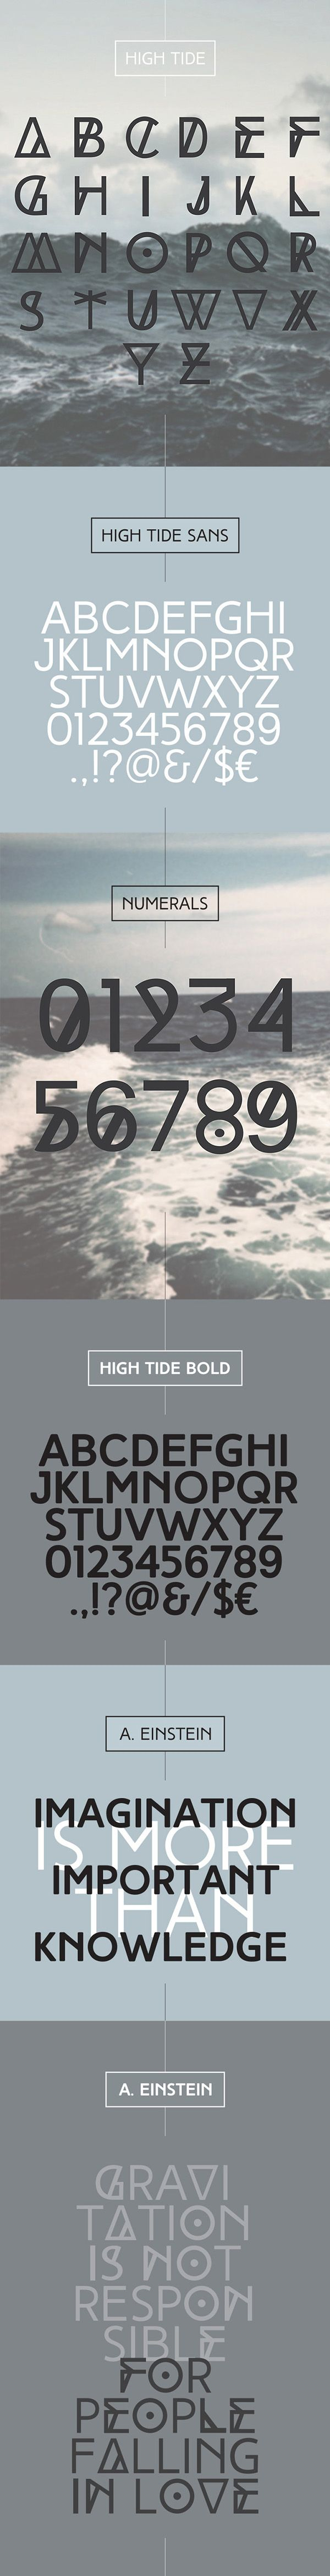 new typeface created by my need of having a more alternative font to use in my projectsFREE download in the LINKhttp://fontfabric.com/high-tide-free-fonts/